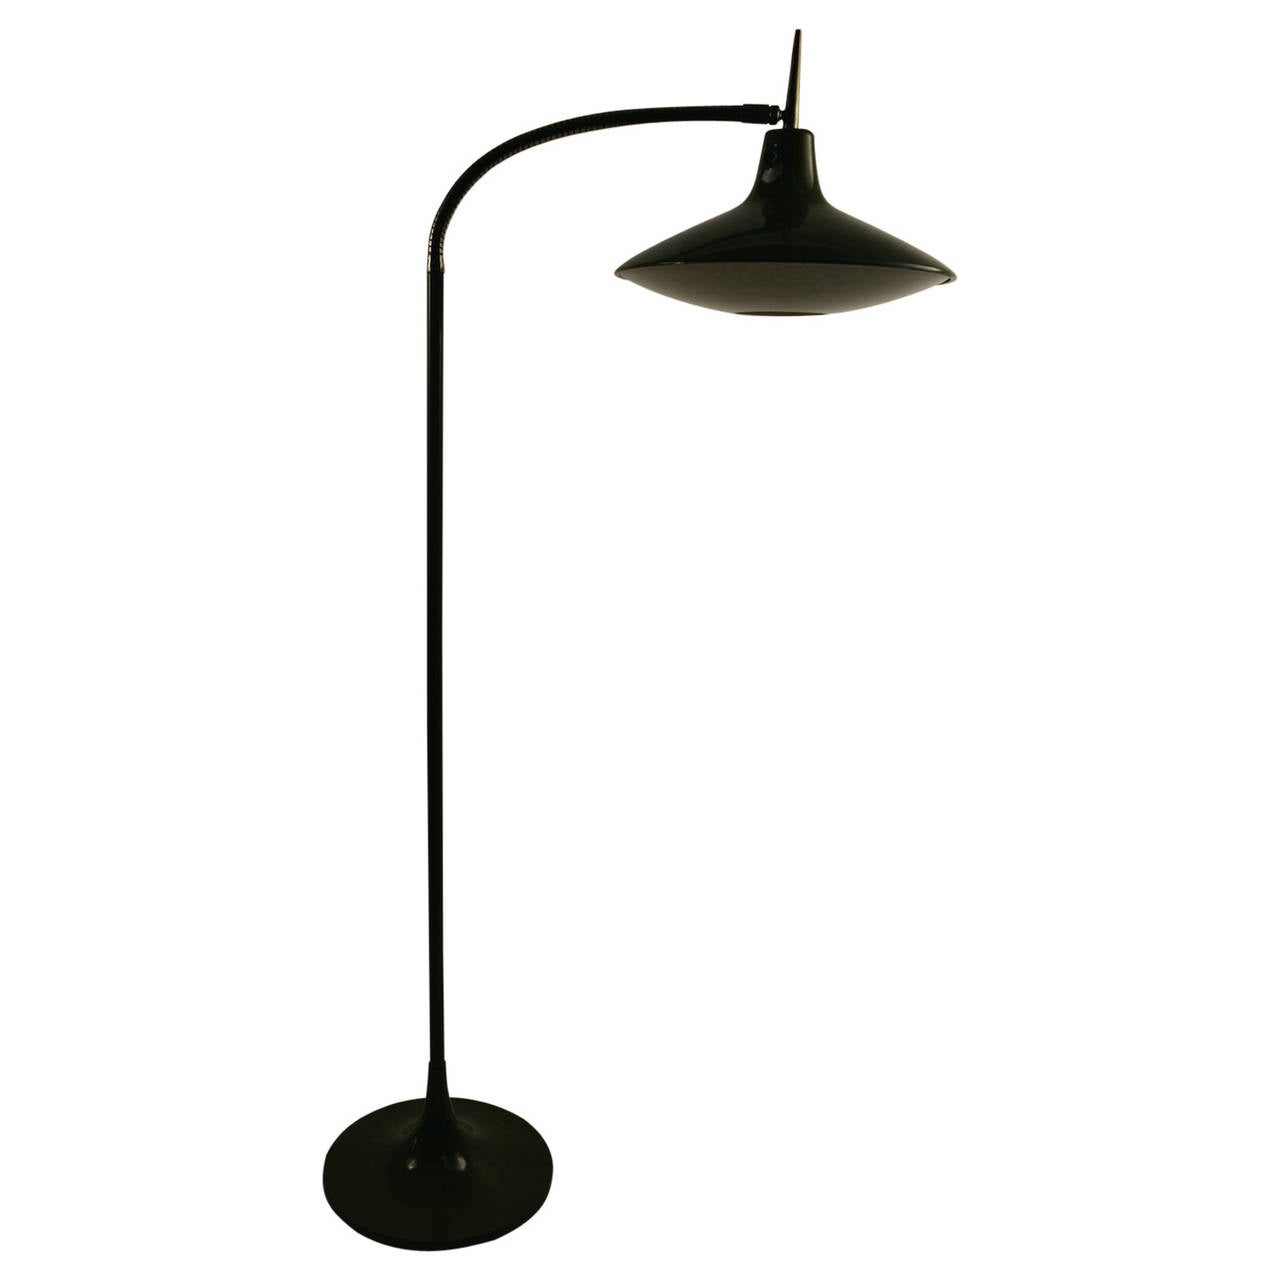 Laurel Gooseneck Floor Lamp Model B 683 In The Style Of Ponti For